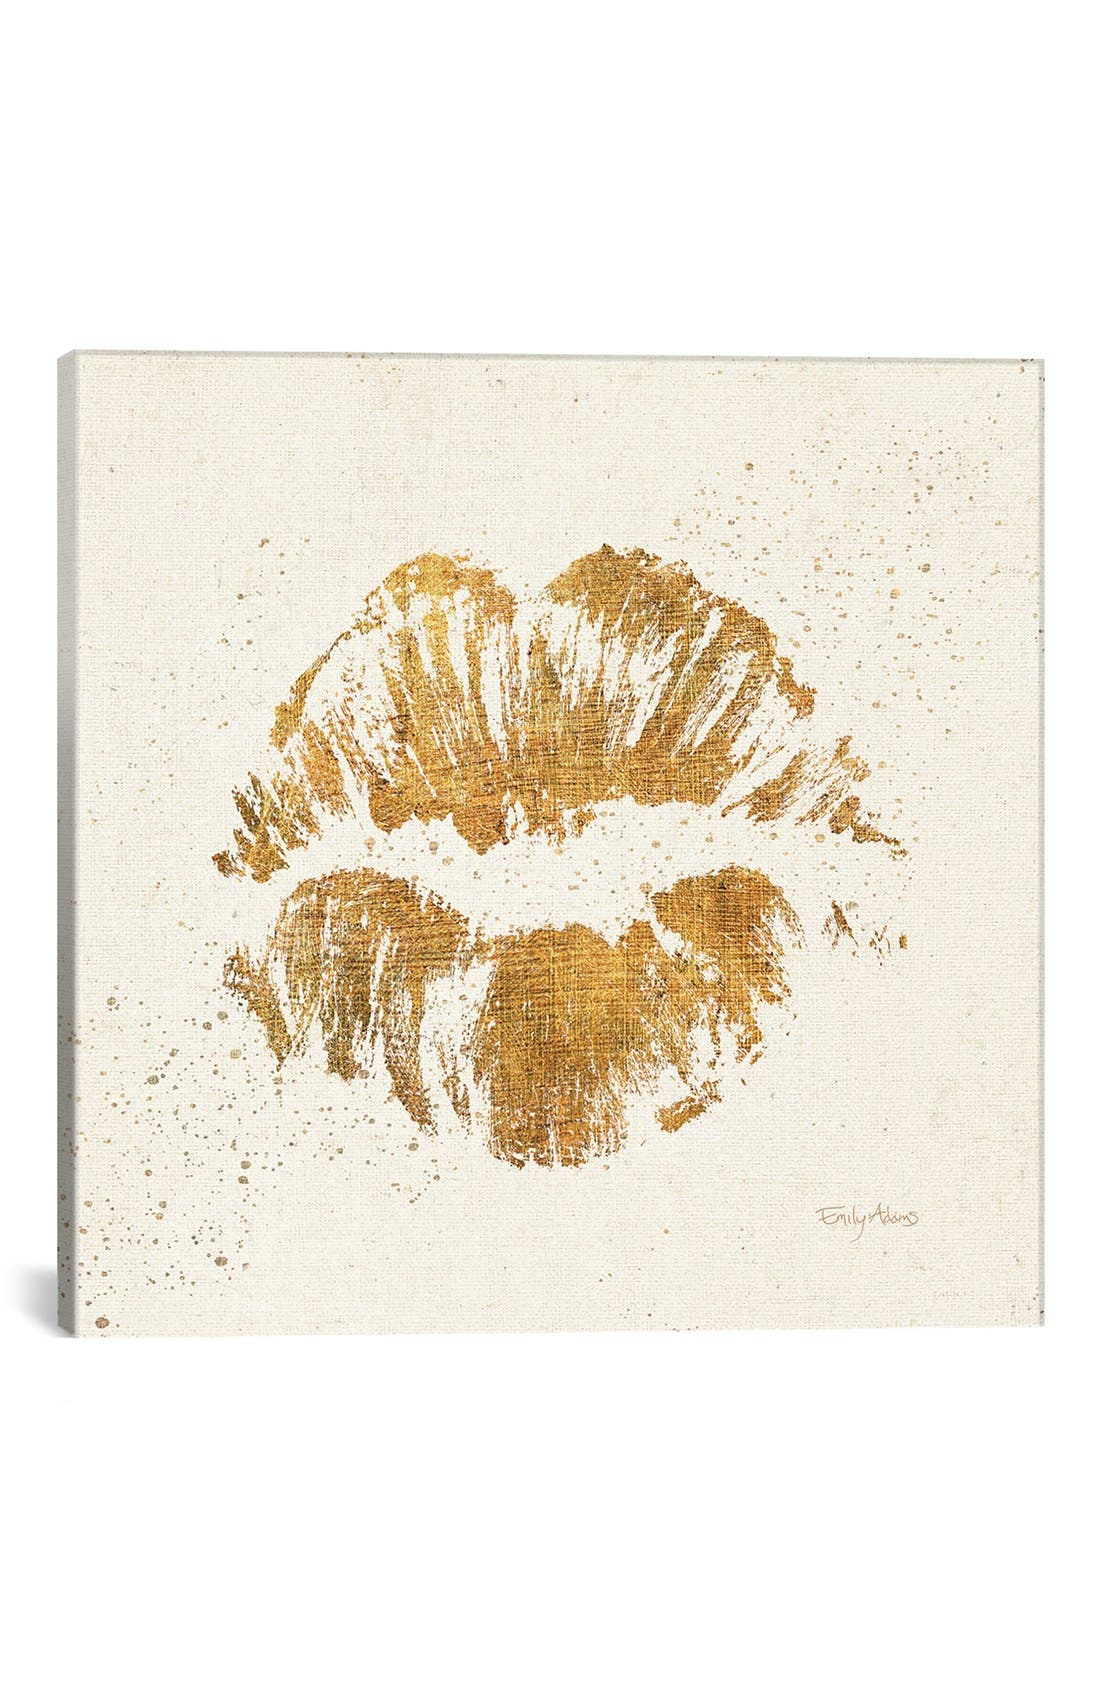 'Golden Lips' Giclée Print Canvas Art,                             Main thumbnail 1, color,                             Beige